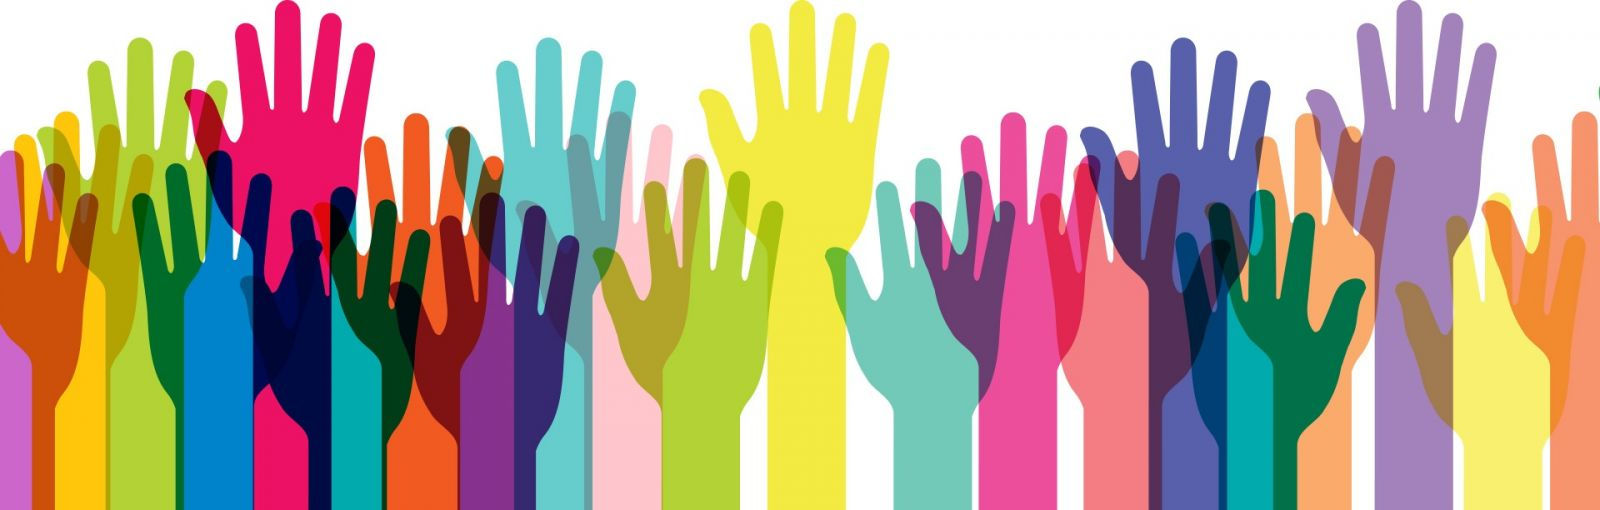 Graphic art image of different colored hands reaching to the sky.